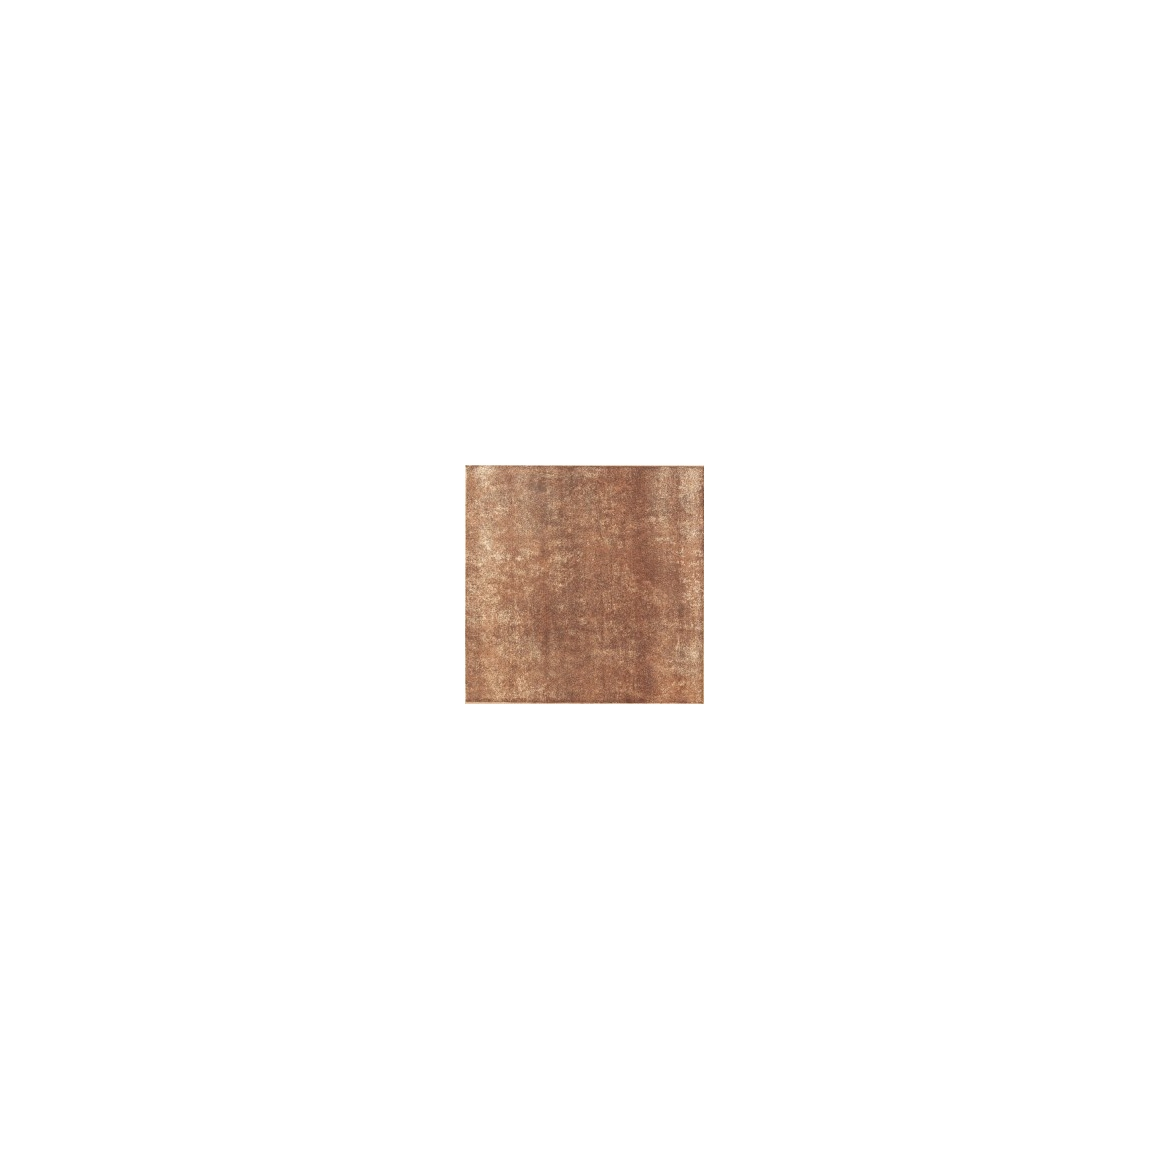 https://cerdesign.pl/517-large_default/p10568-paradyz-redo-brown-30x30.jpg